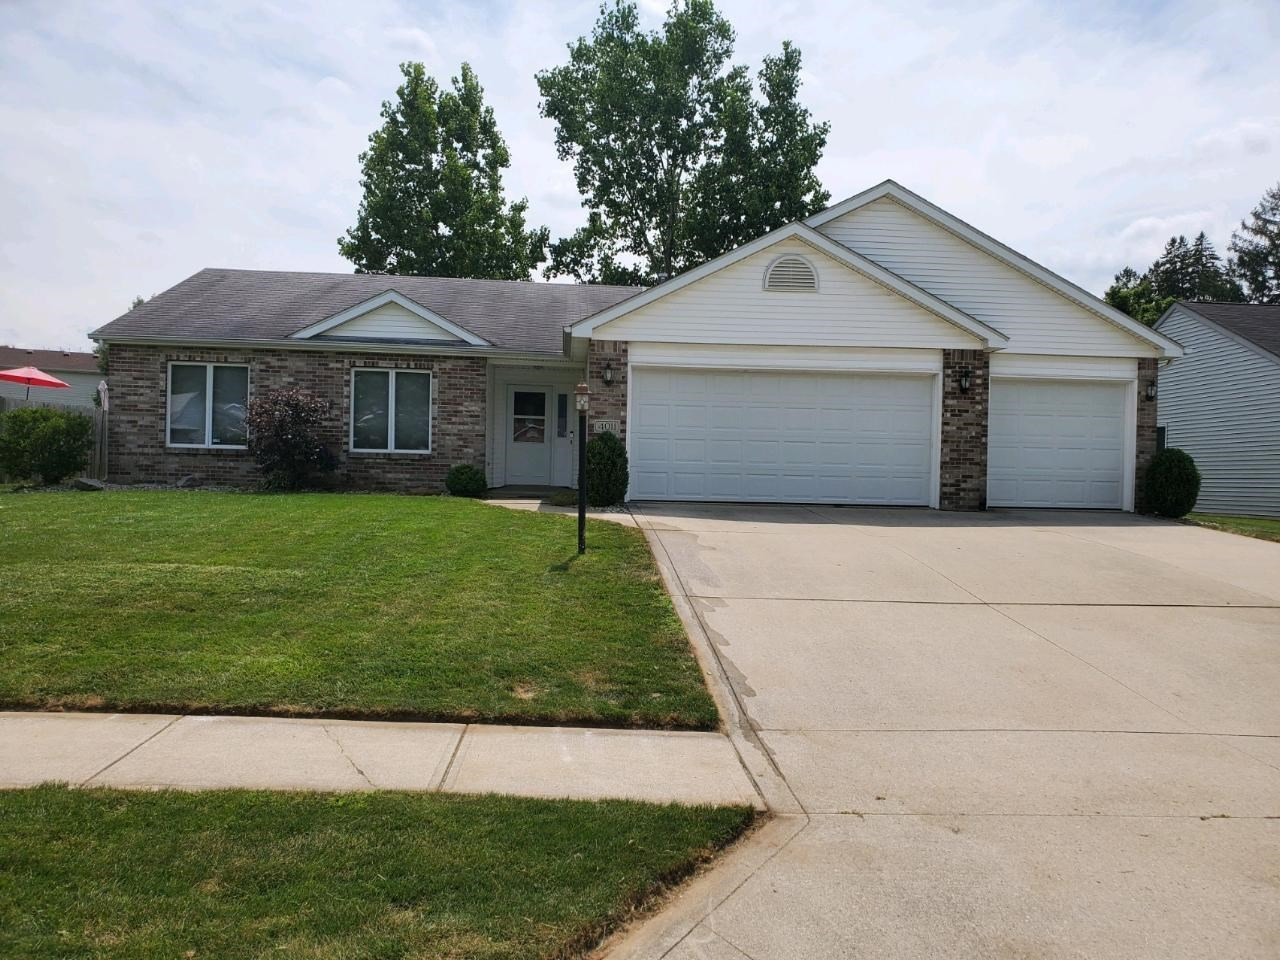 1485 SqFt House In The Knolls Of Ardmore